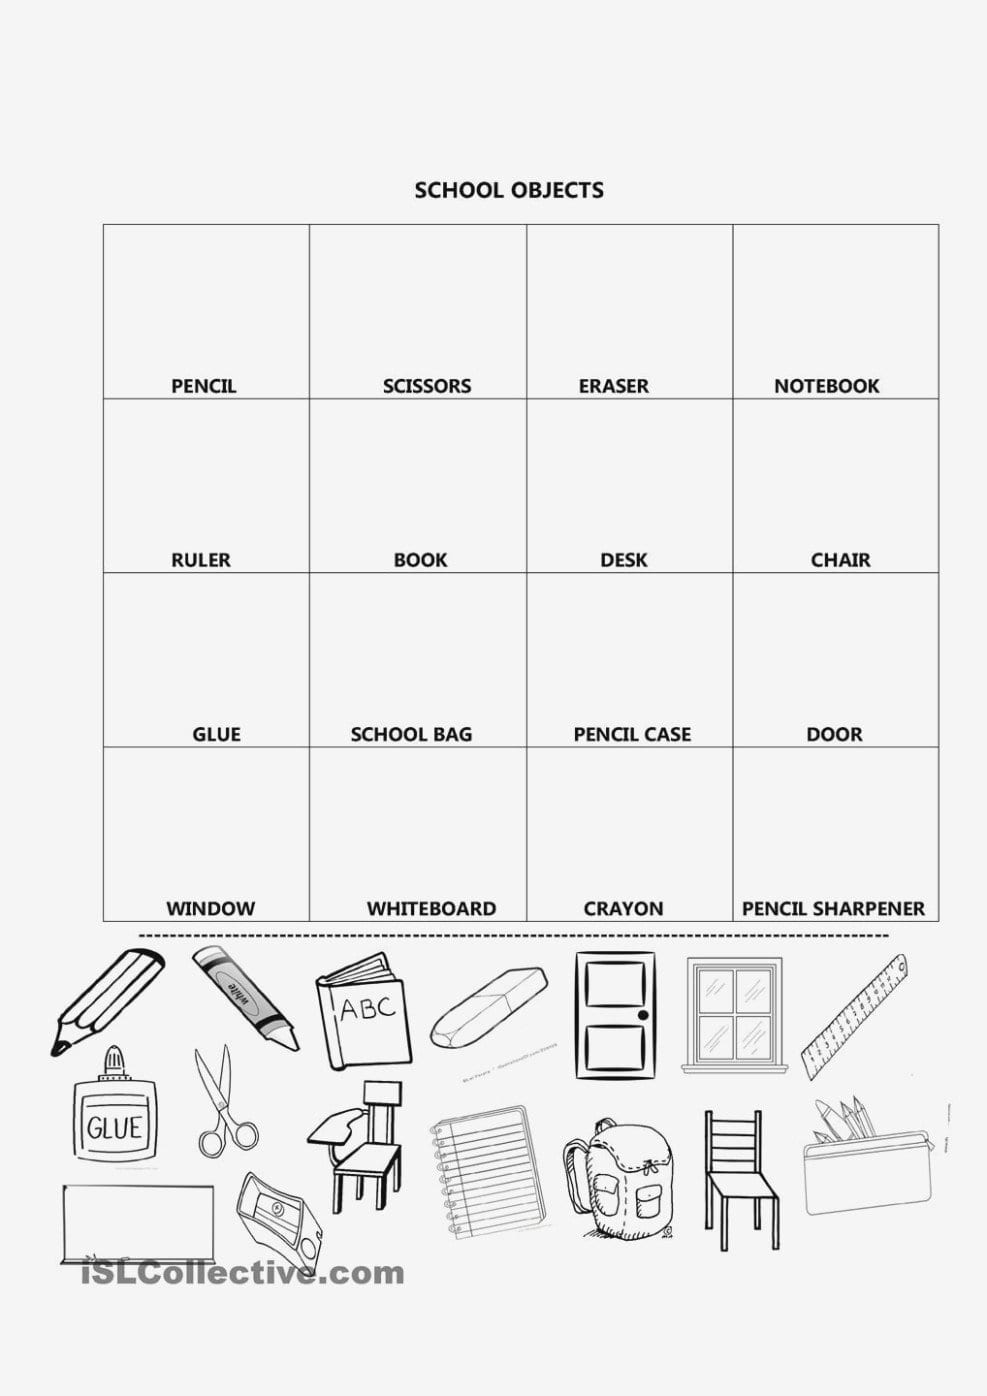 15 Easy Rules Of Label School  Label Maker Ideas Information Together With Label School Supplies Worksheet